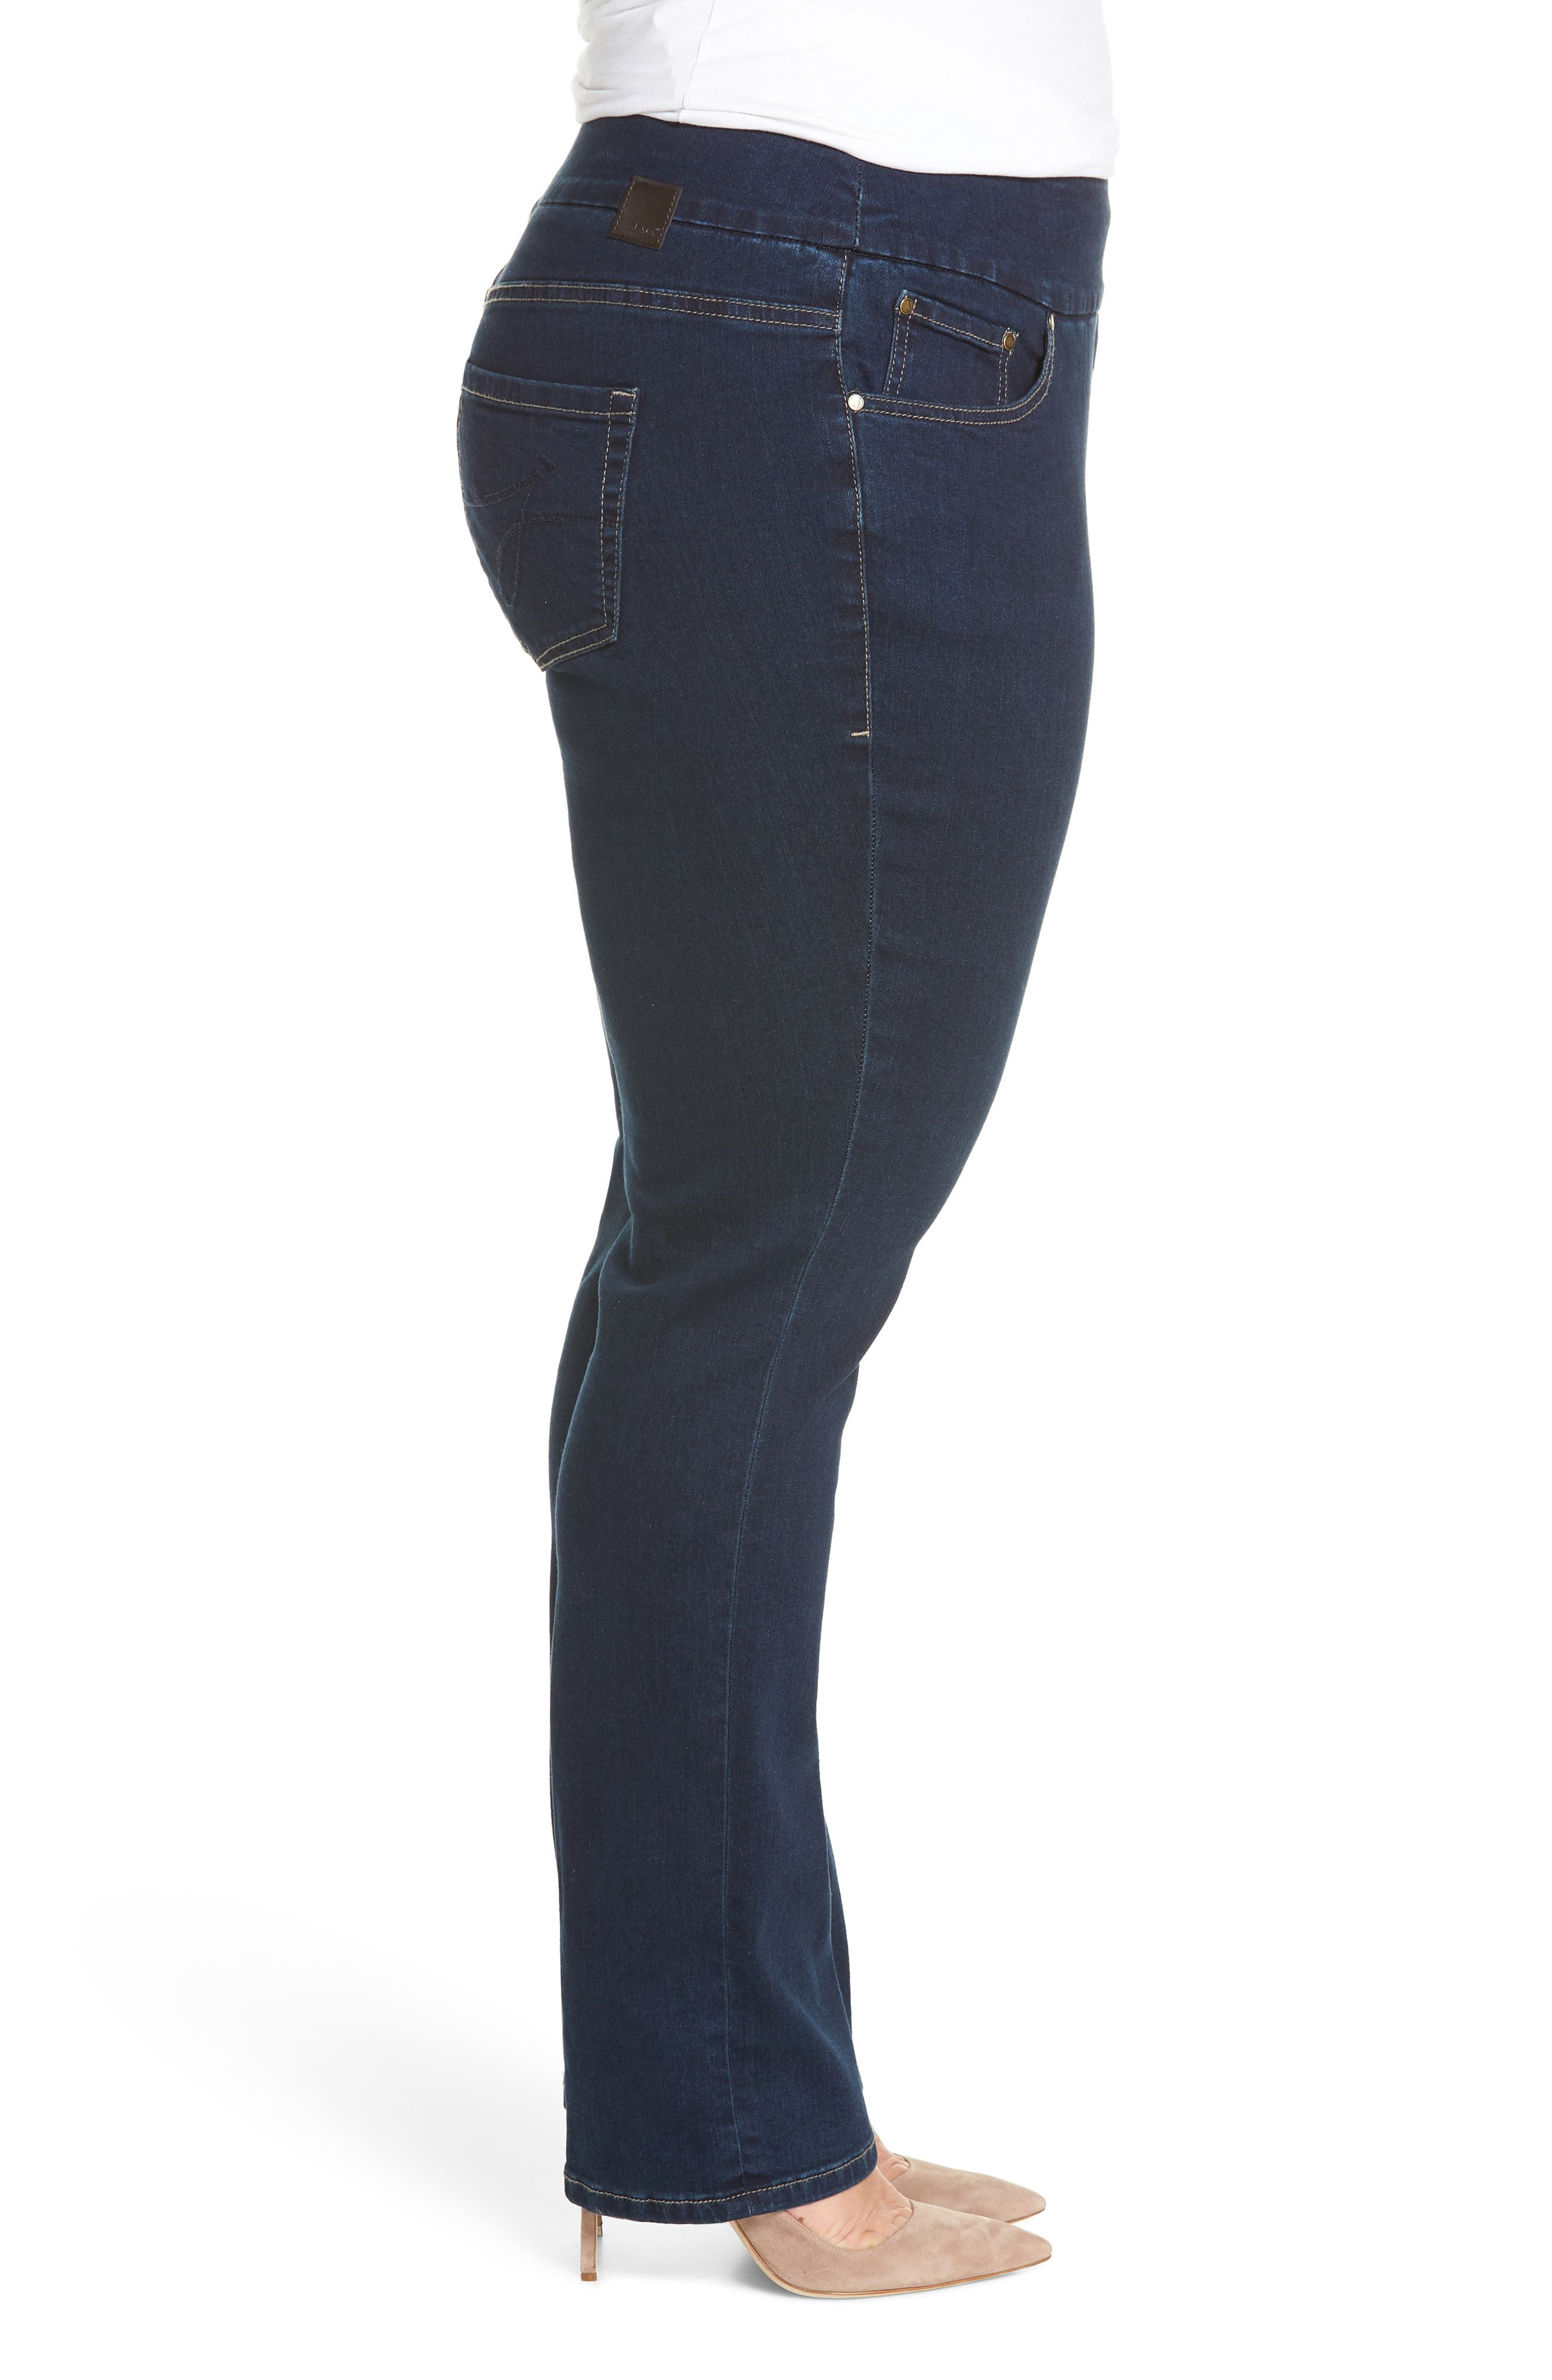 JAG JEANS, Paley Pull-On Bootcut Jeans, Alternate thumbnail 4, color, MED INDIGO